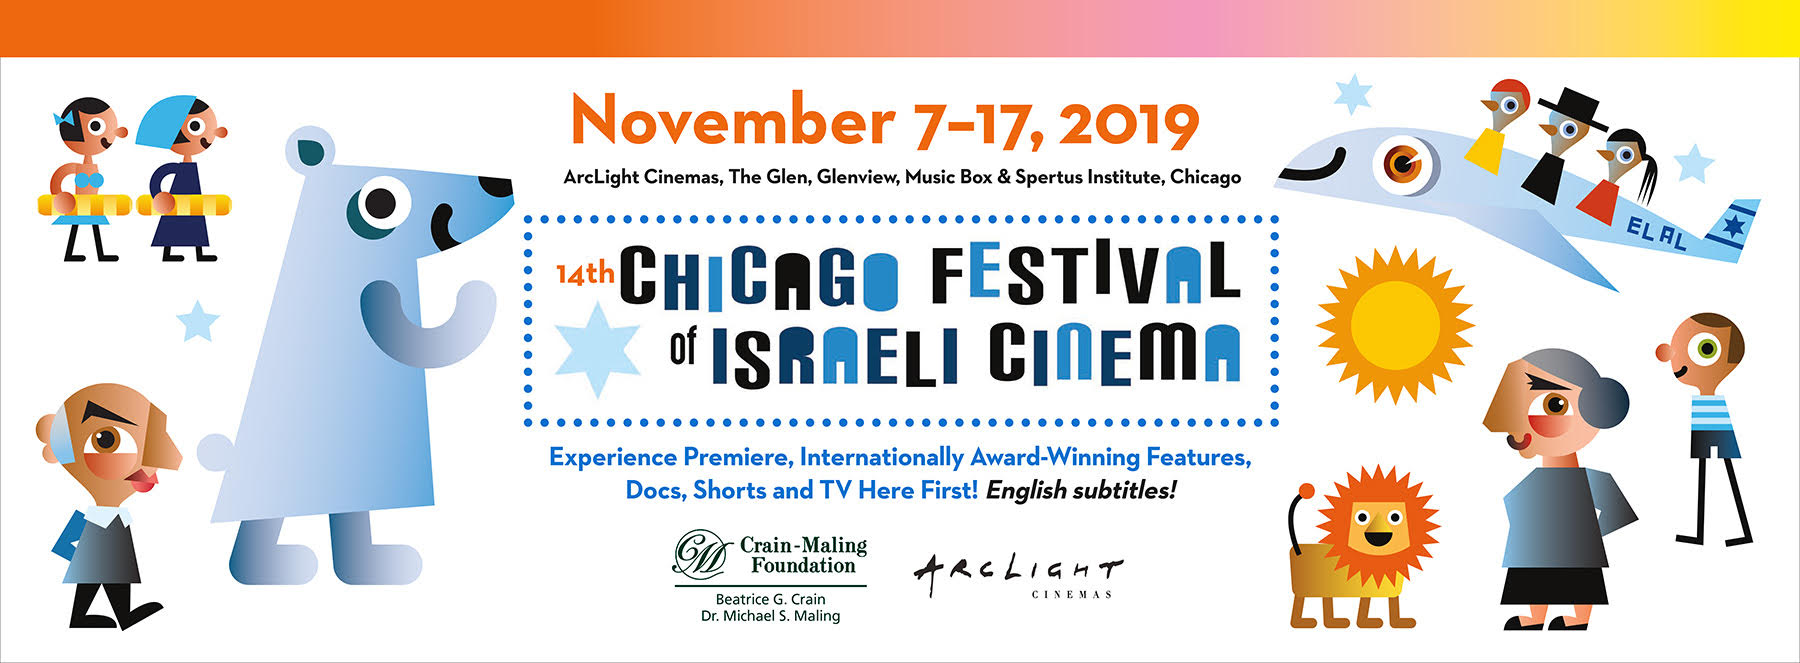 https://israelifilmchi.org/wp-content/uploads/2019/07/CFIC2019.jpg